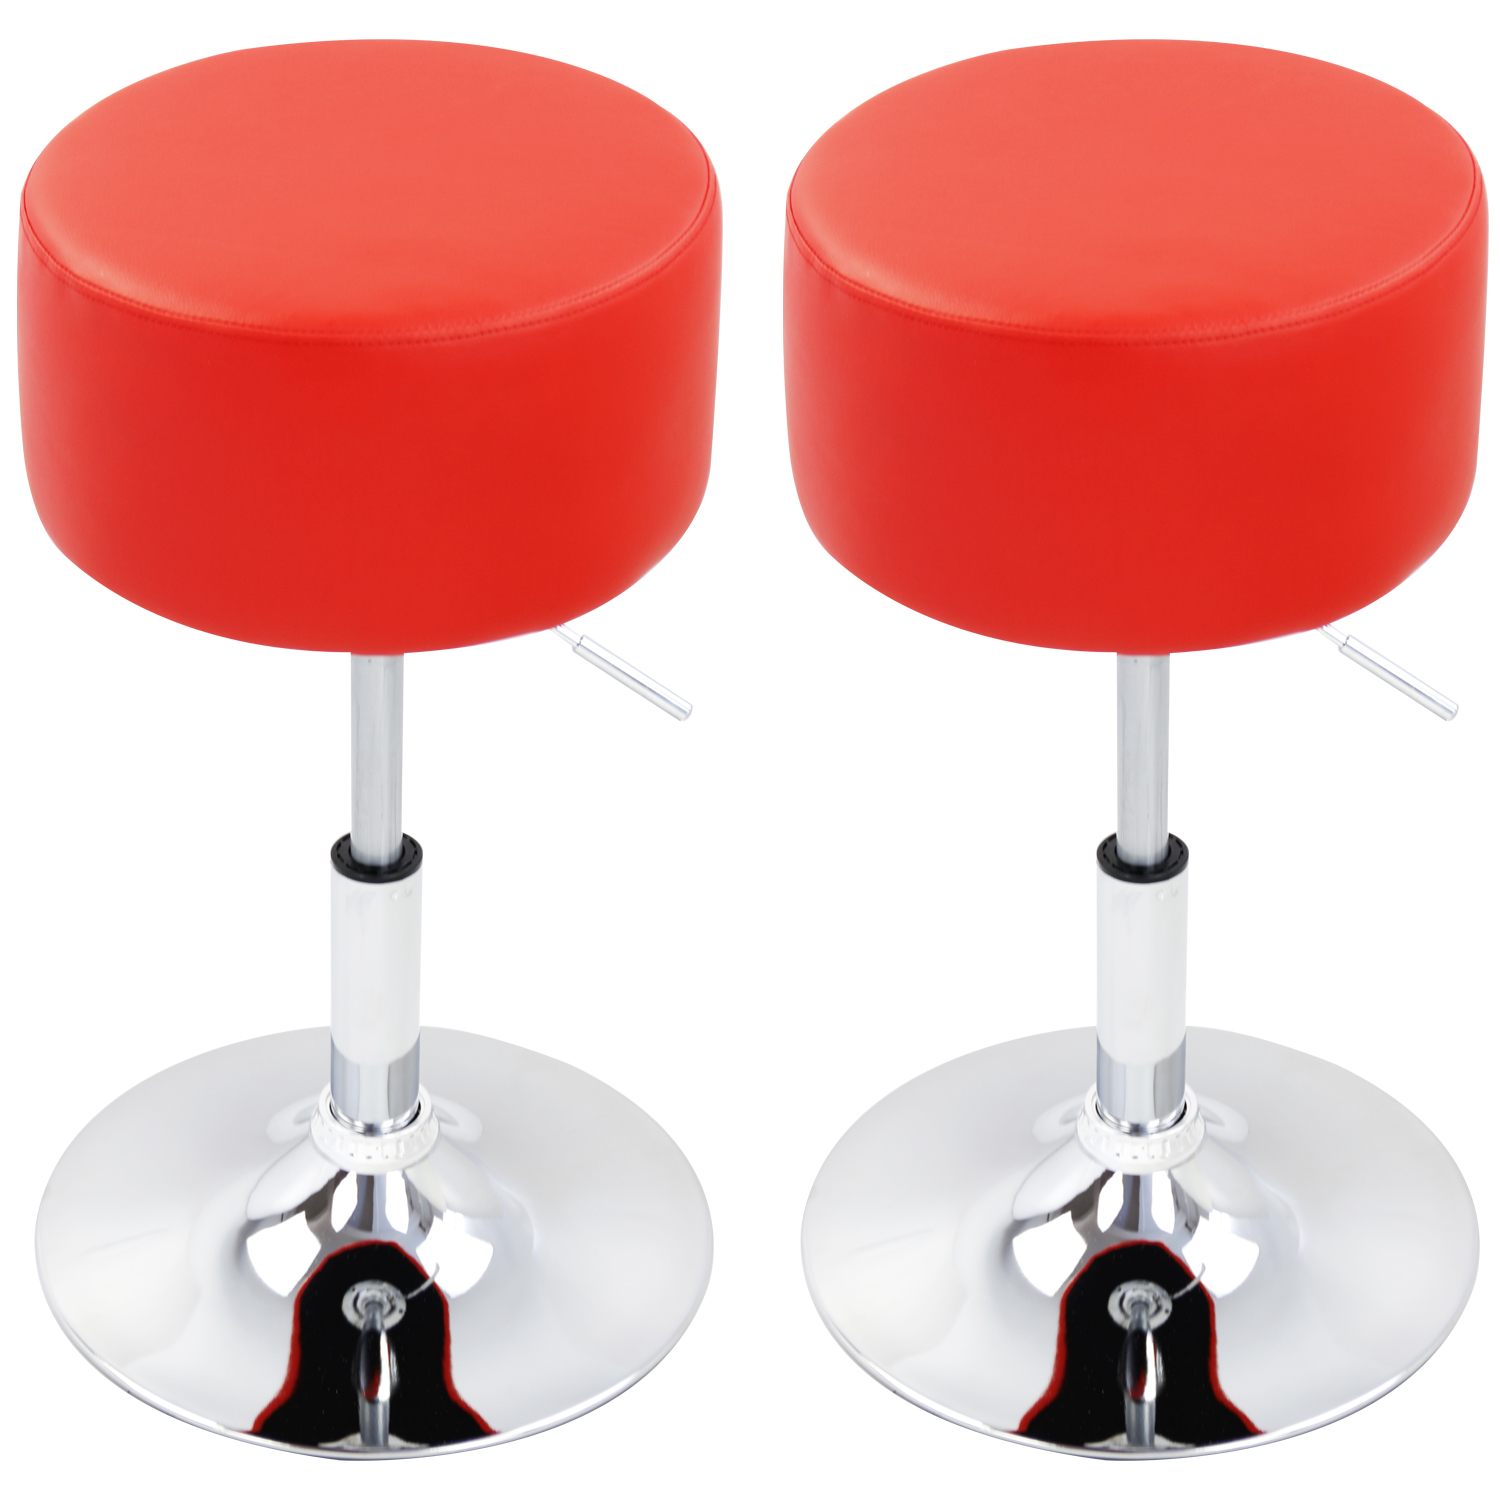 Bar Stools Set Of 2 Breakfast Kitchen Swivel Stool Chairs Faux Leather Red U049